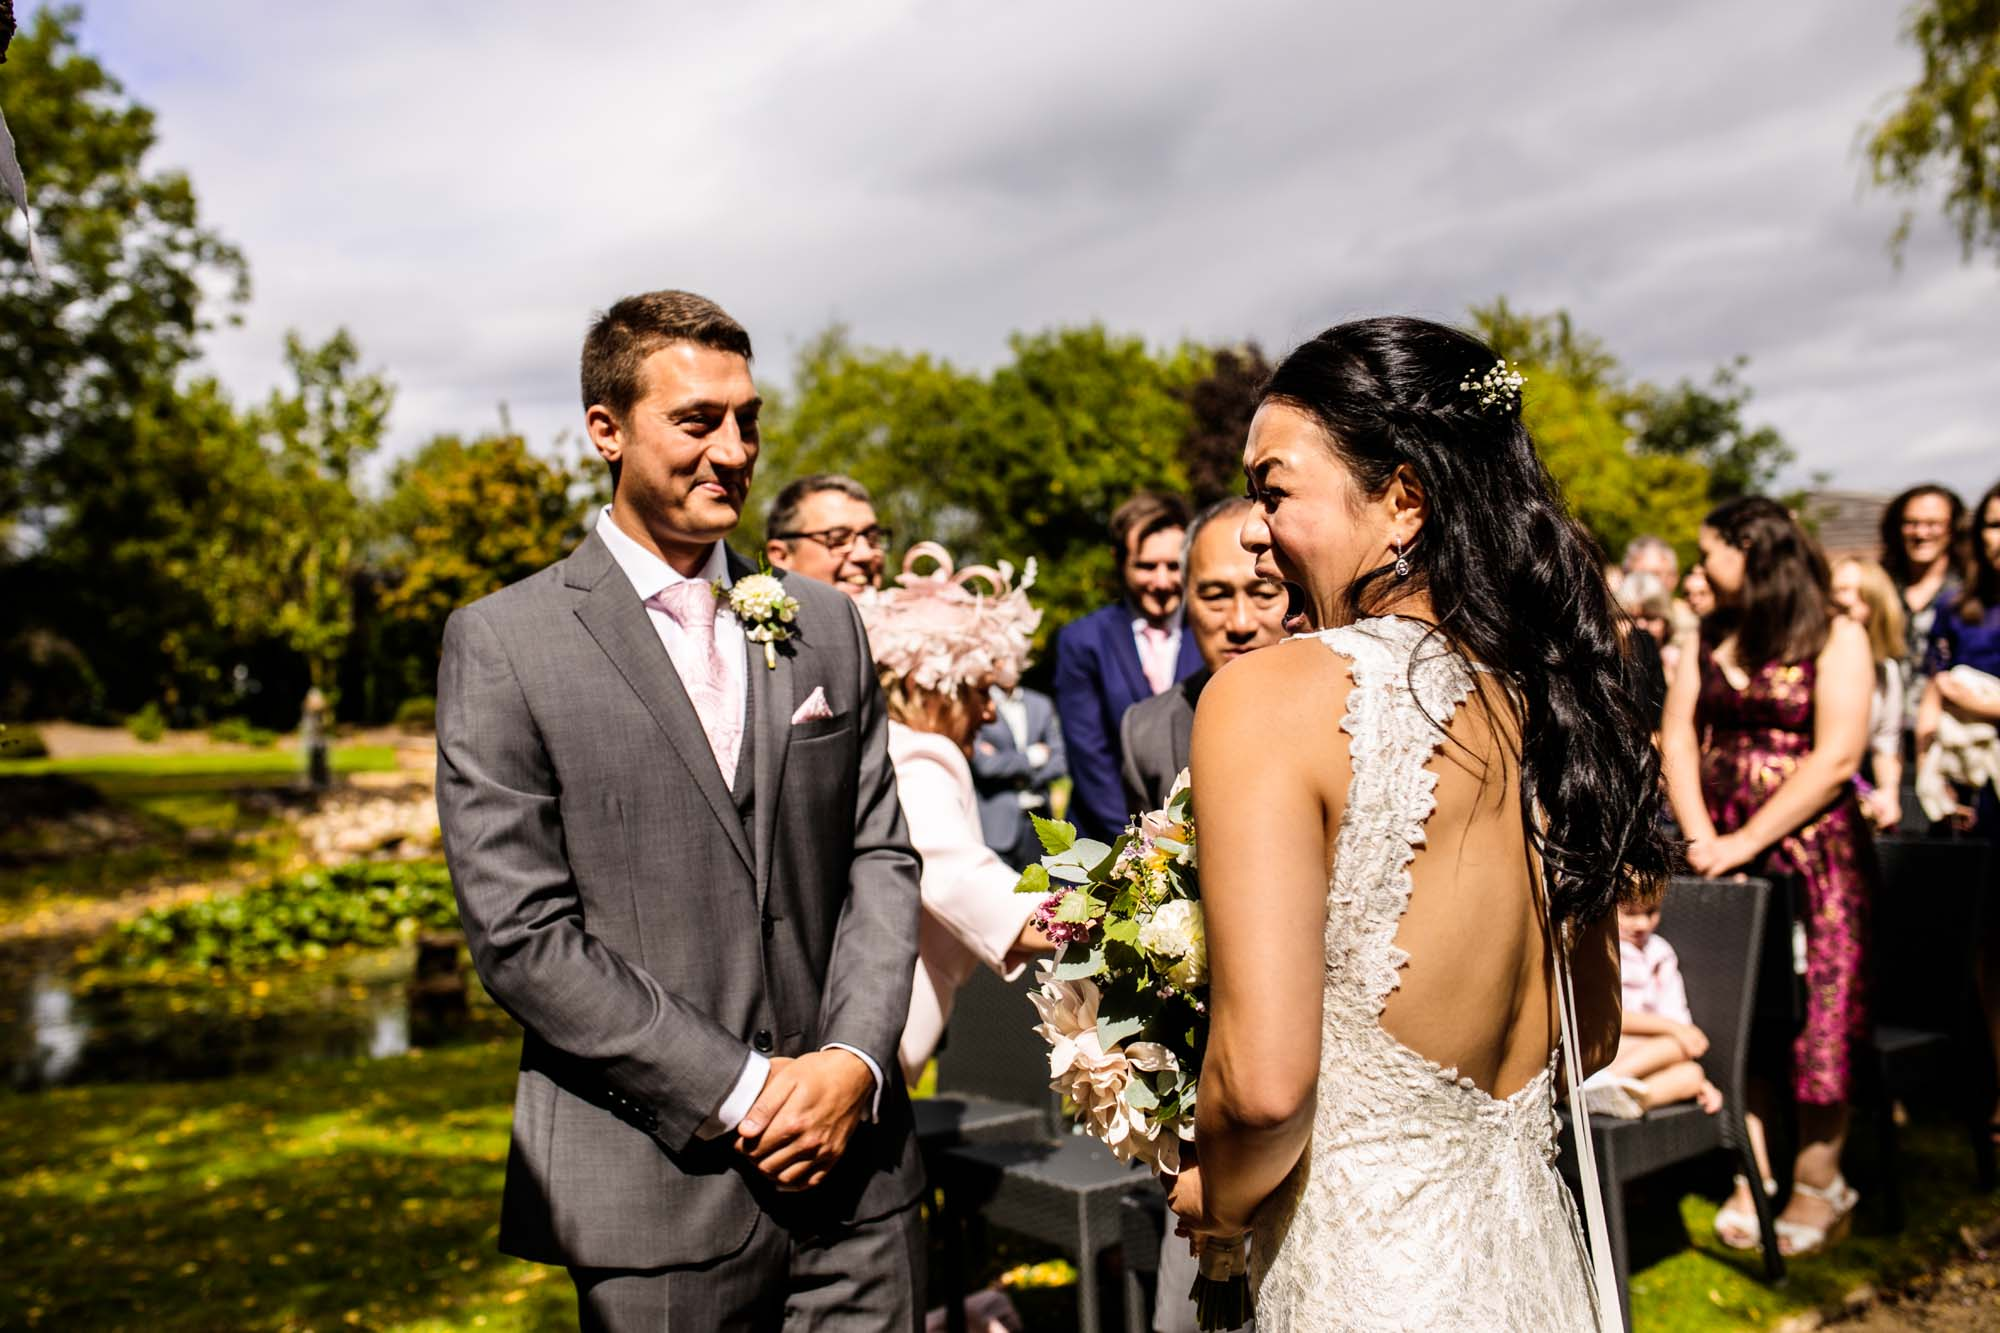 Manley Mere Wedding Ceremony Photographer